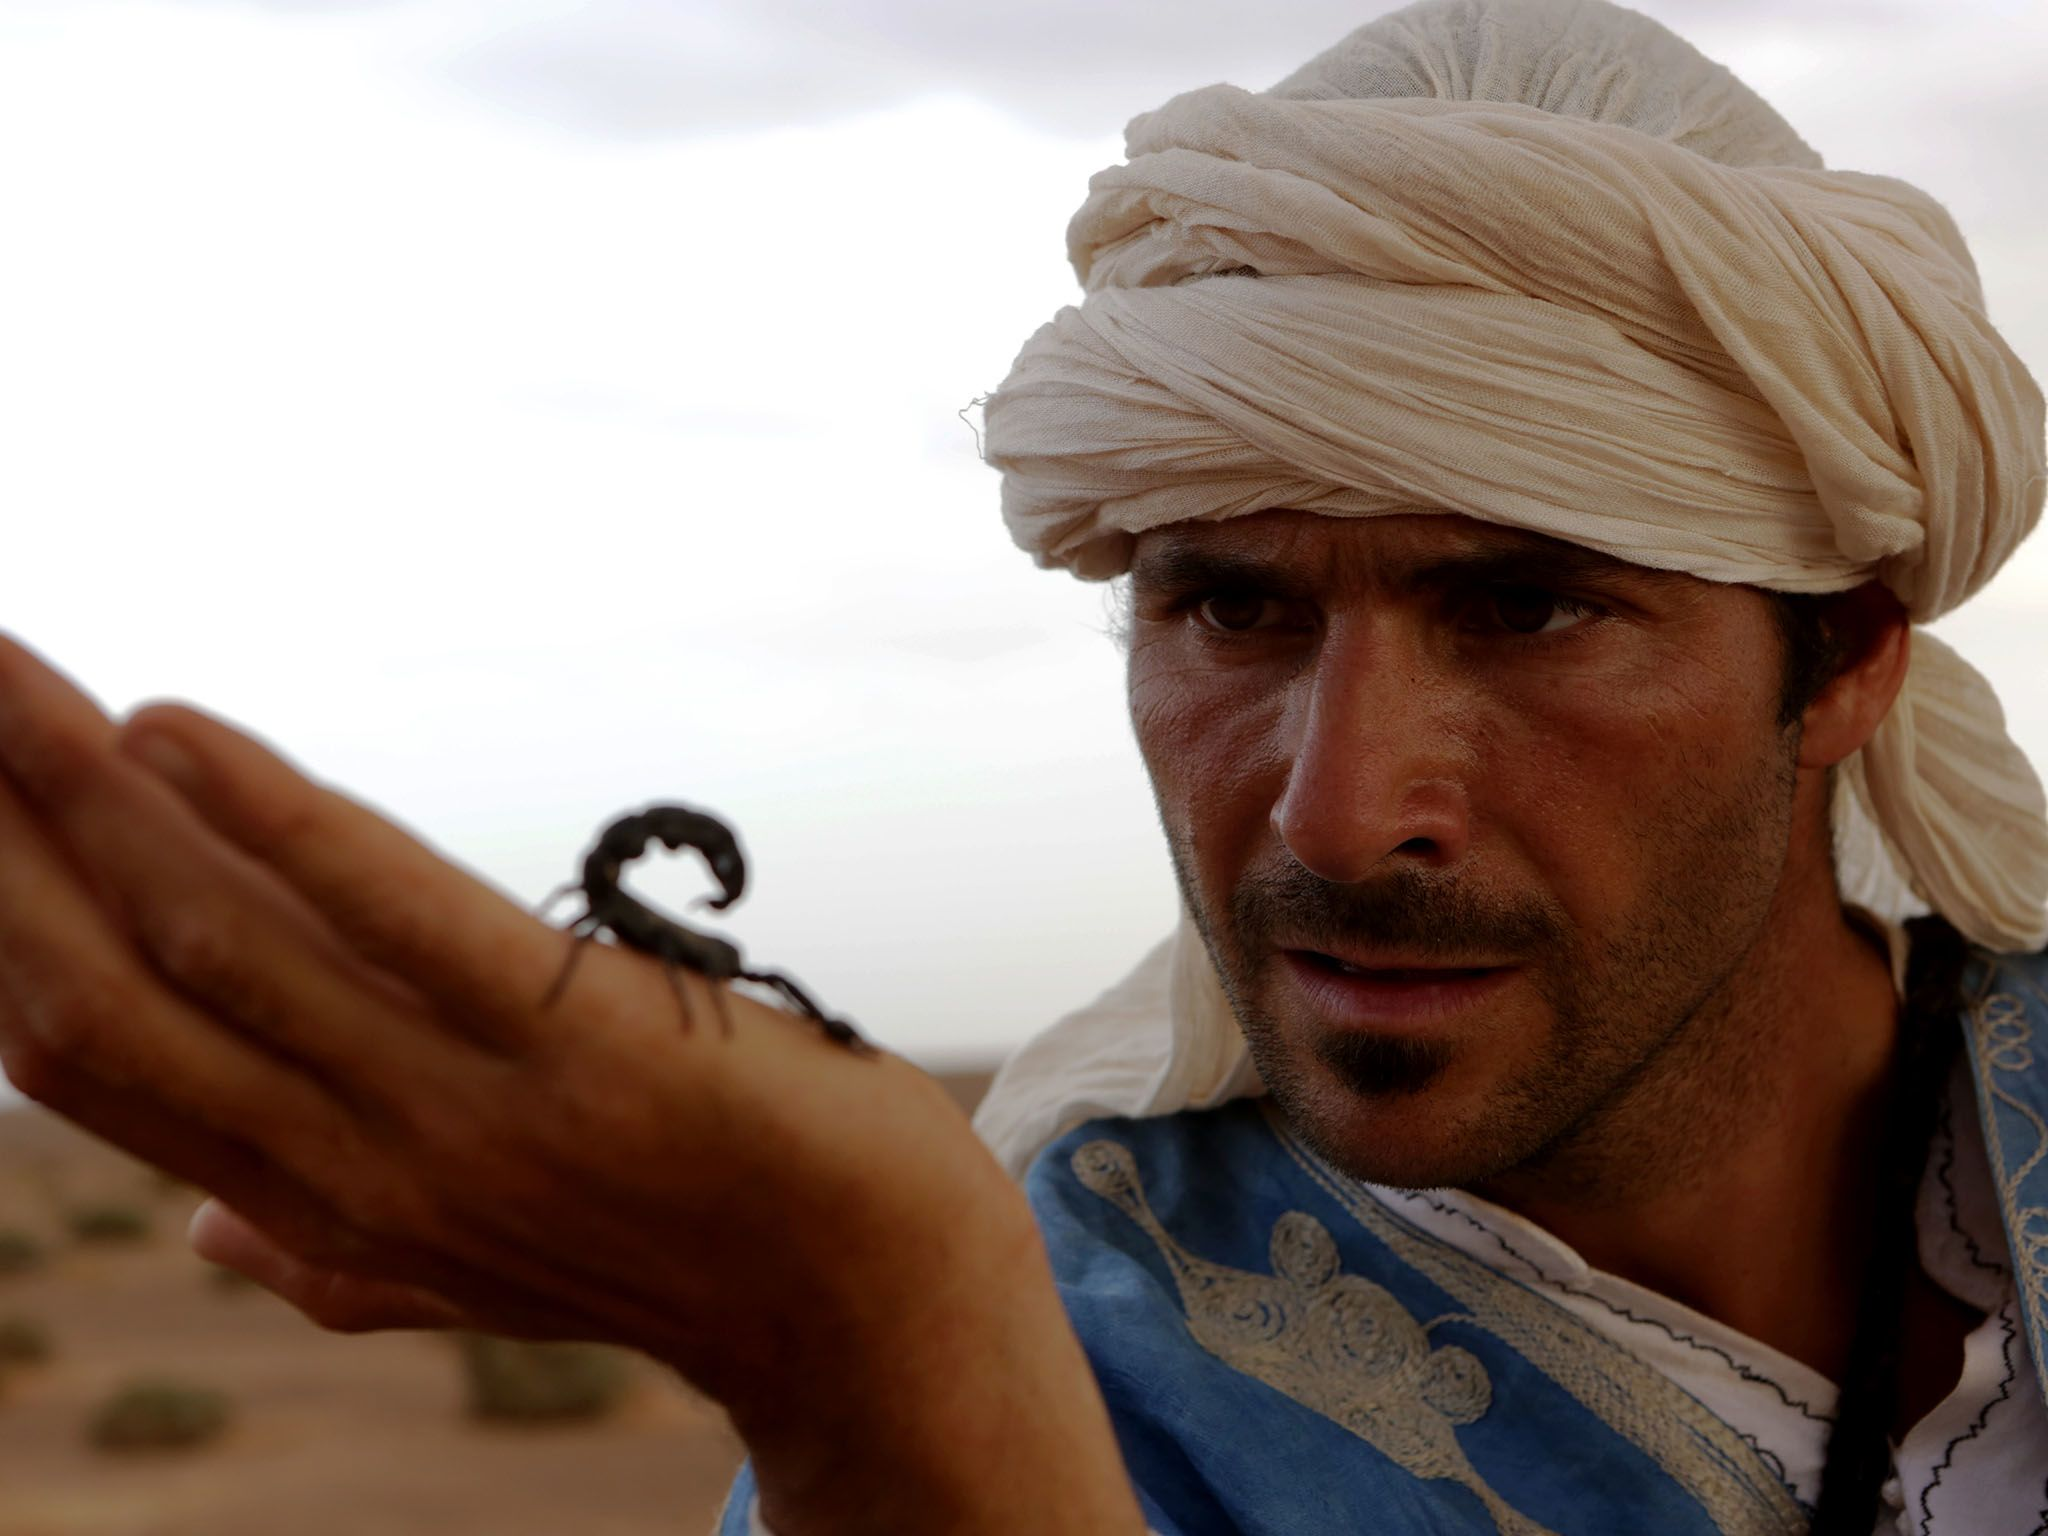 Morocco: Hazen holds a poisonous scorpion. This image is from Primal Survivor. [Photo of the day - ژانویه 2016]